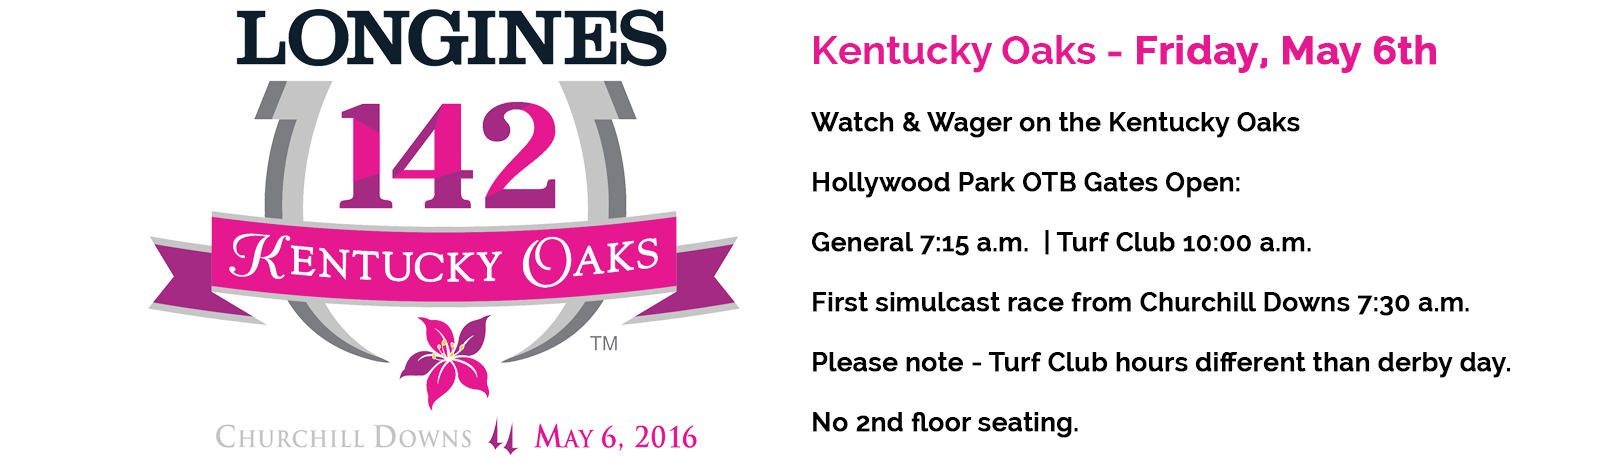 Kentucky Oaks 16